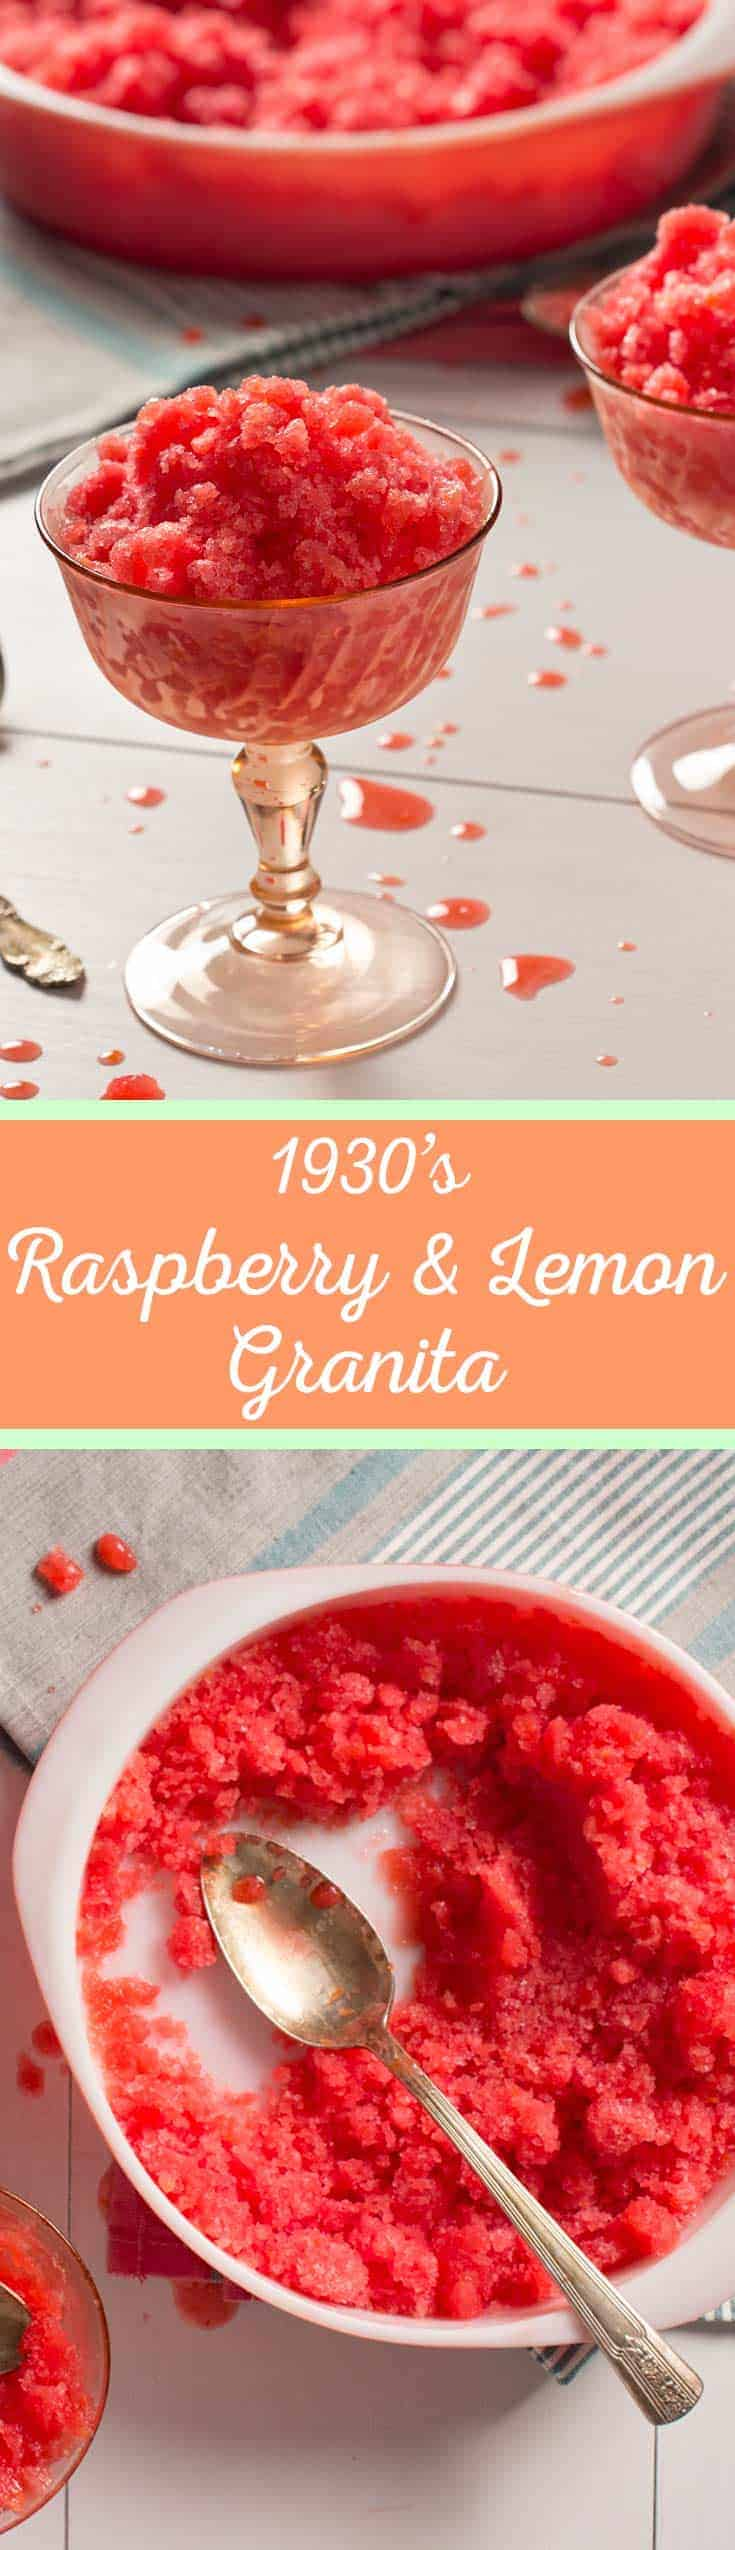 Raspberry Meyer Lemon Granita - Originally published in the 1930's, this recipe is bright and refreshing...perfect for a summer day! #vintagerecipe